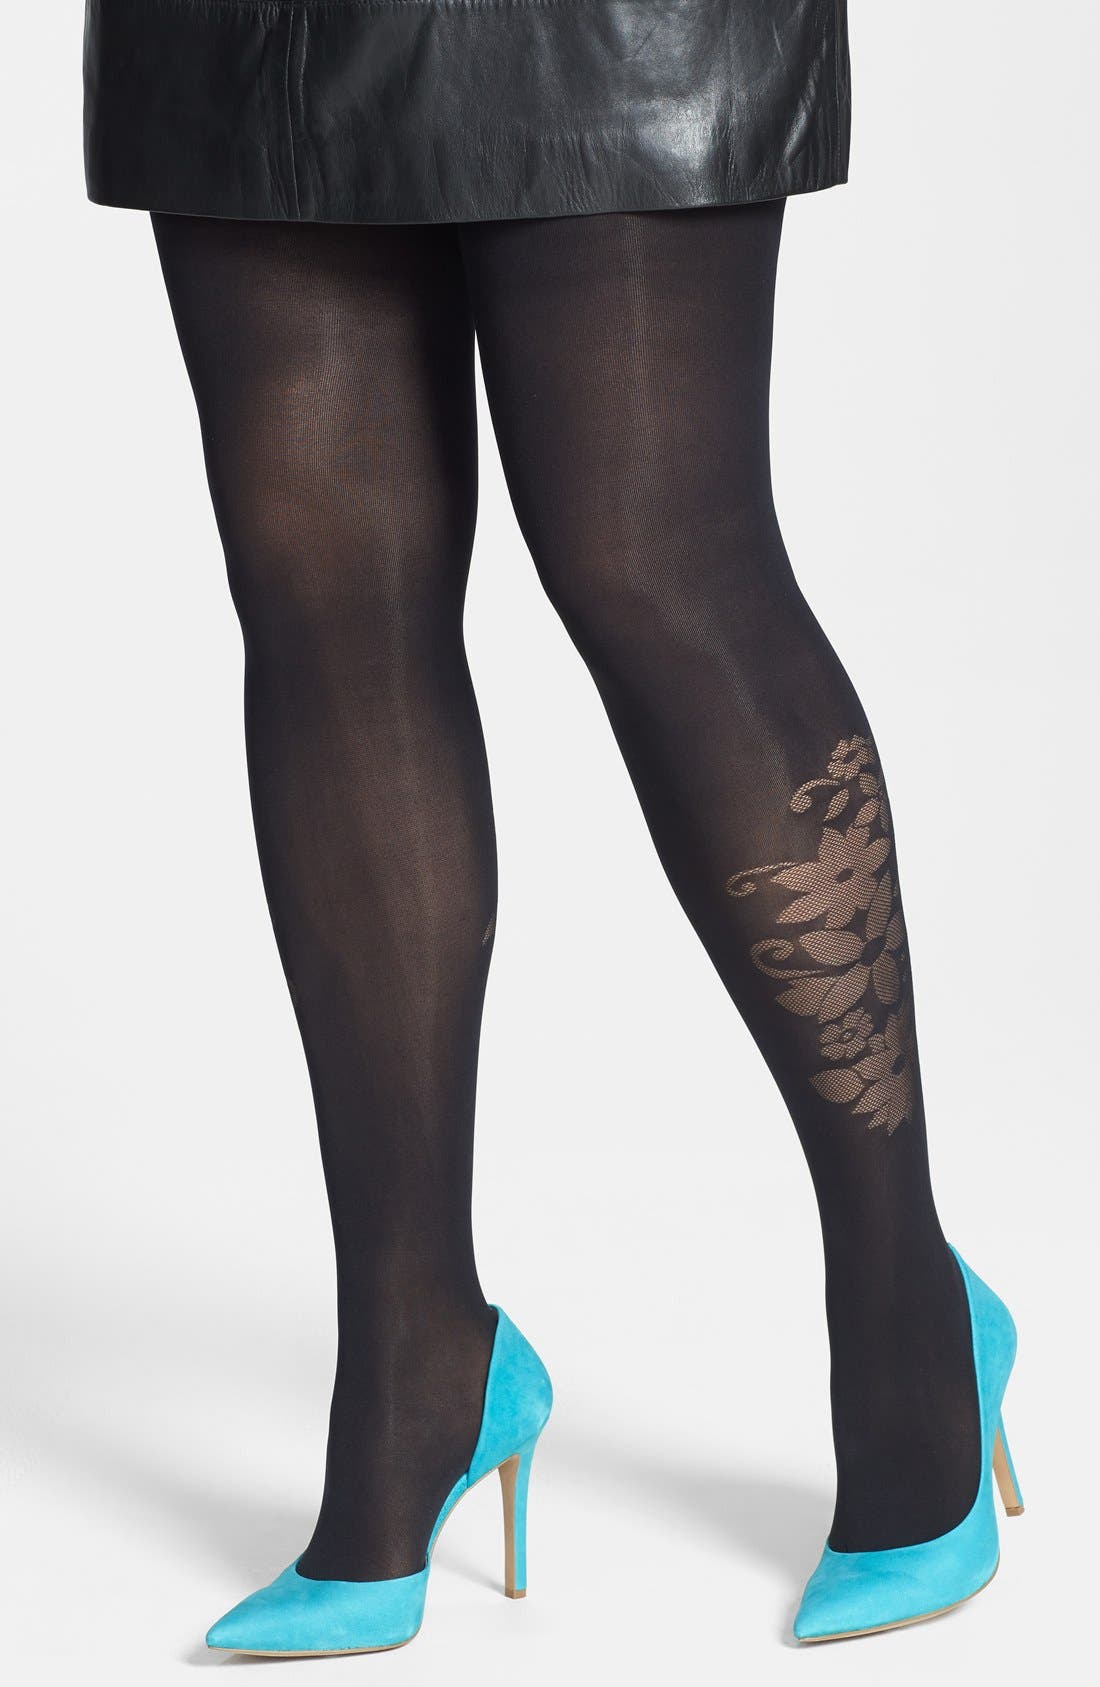 Alternate Image 1 Selected - Pretty Polly 'Curves - Flower' Tights (Plus Size)